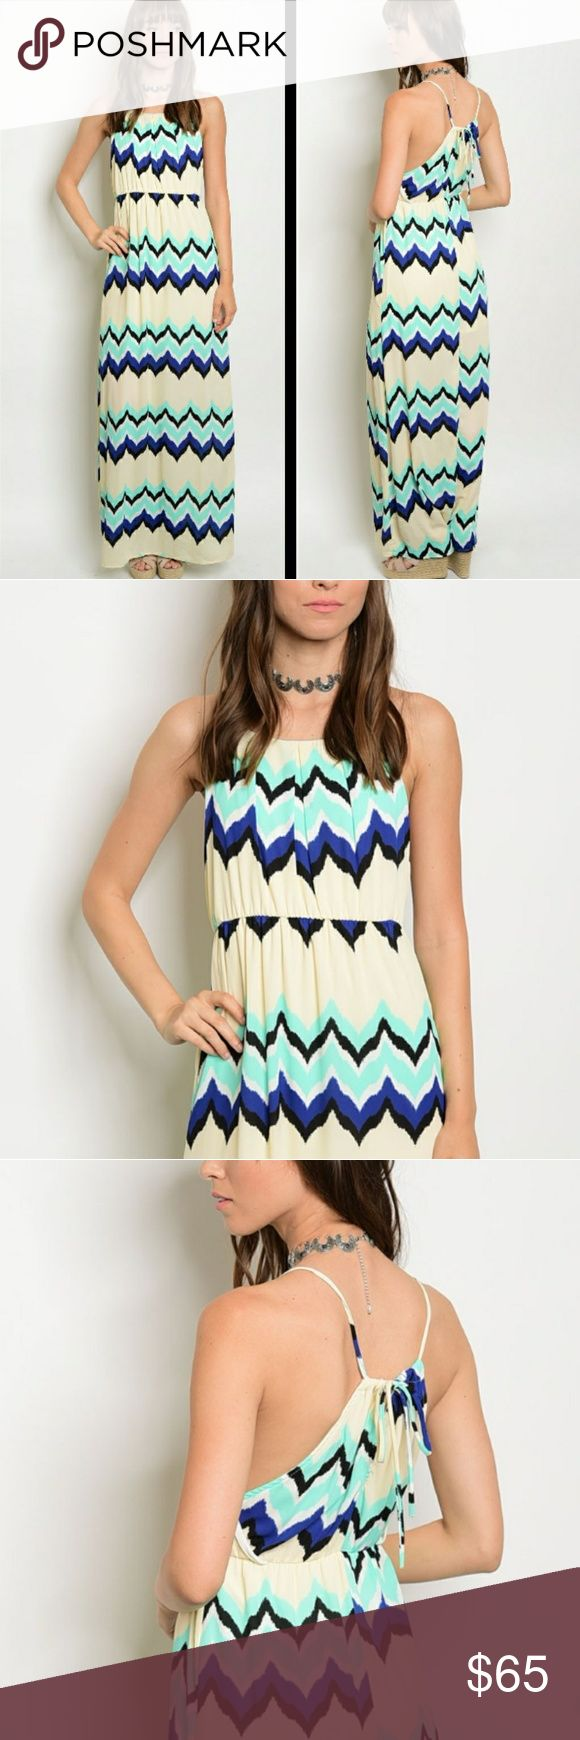 3PACK CREAM MINT BLUE BLACK CHEVRON MAXI DRESS Love this maxi dress! It's so fun and chic. Features a chevron print. Halter style. Pleated neckline. Ties in back. Lined.    3PACK: 1S 1M 1L  5%OFF 3+BUNDLES. SUBJECT TO 5LB WEIGHT LIMIT. Dresses Maxi